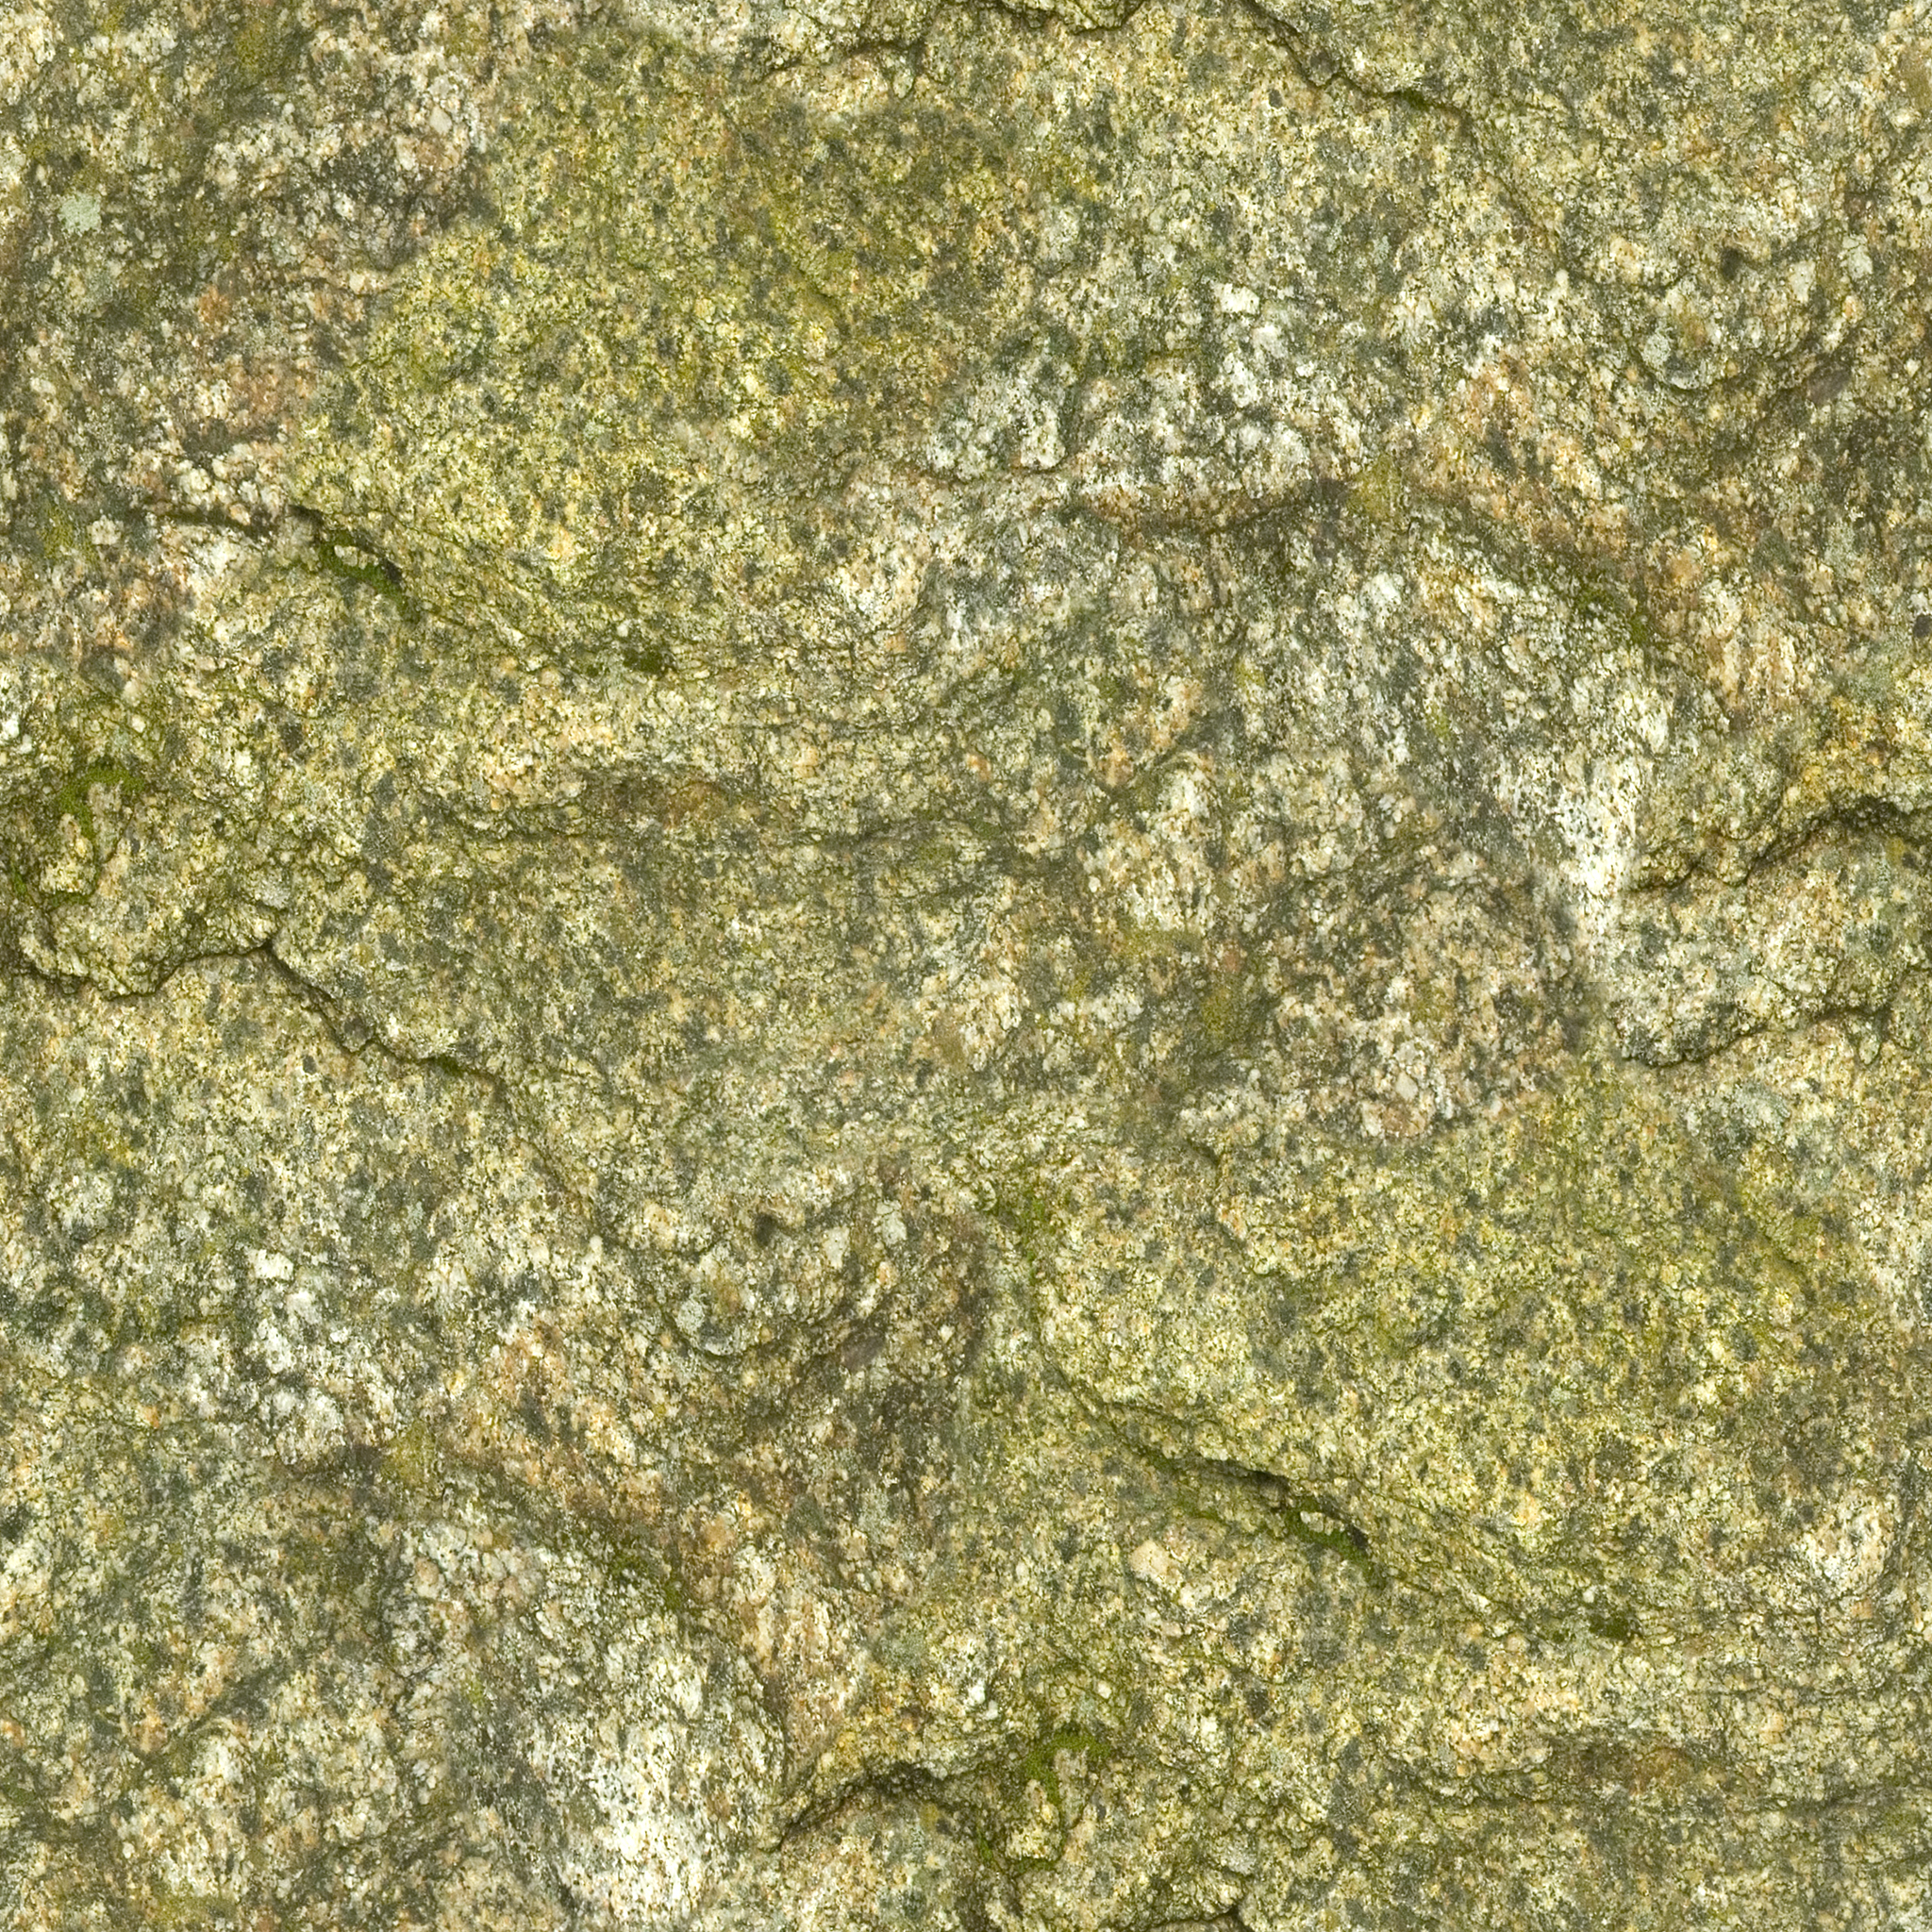 Aged Light Green Rock.jpg